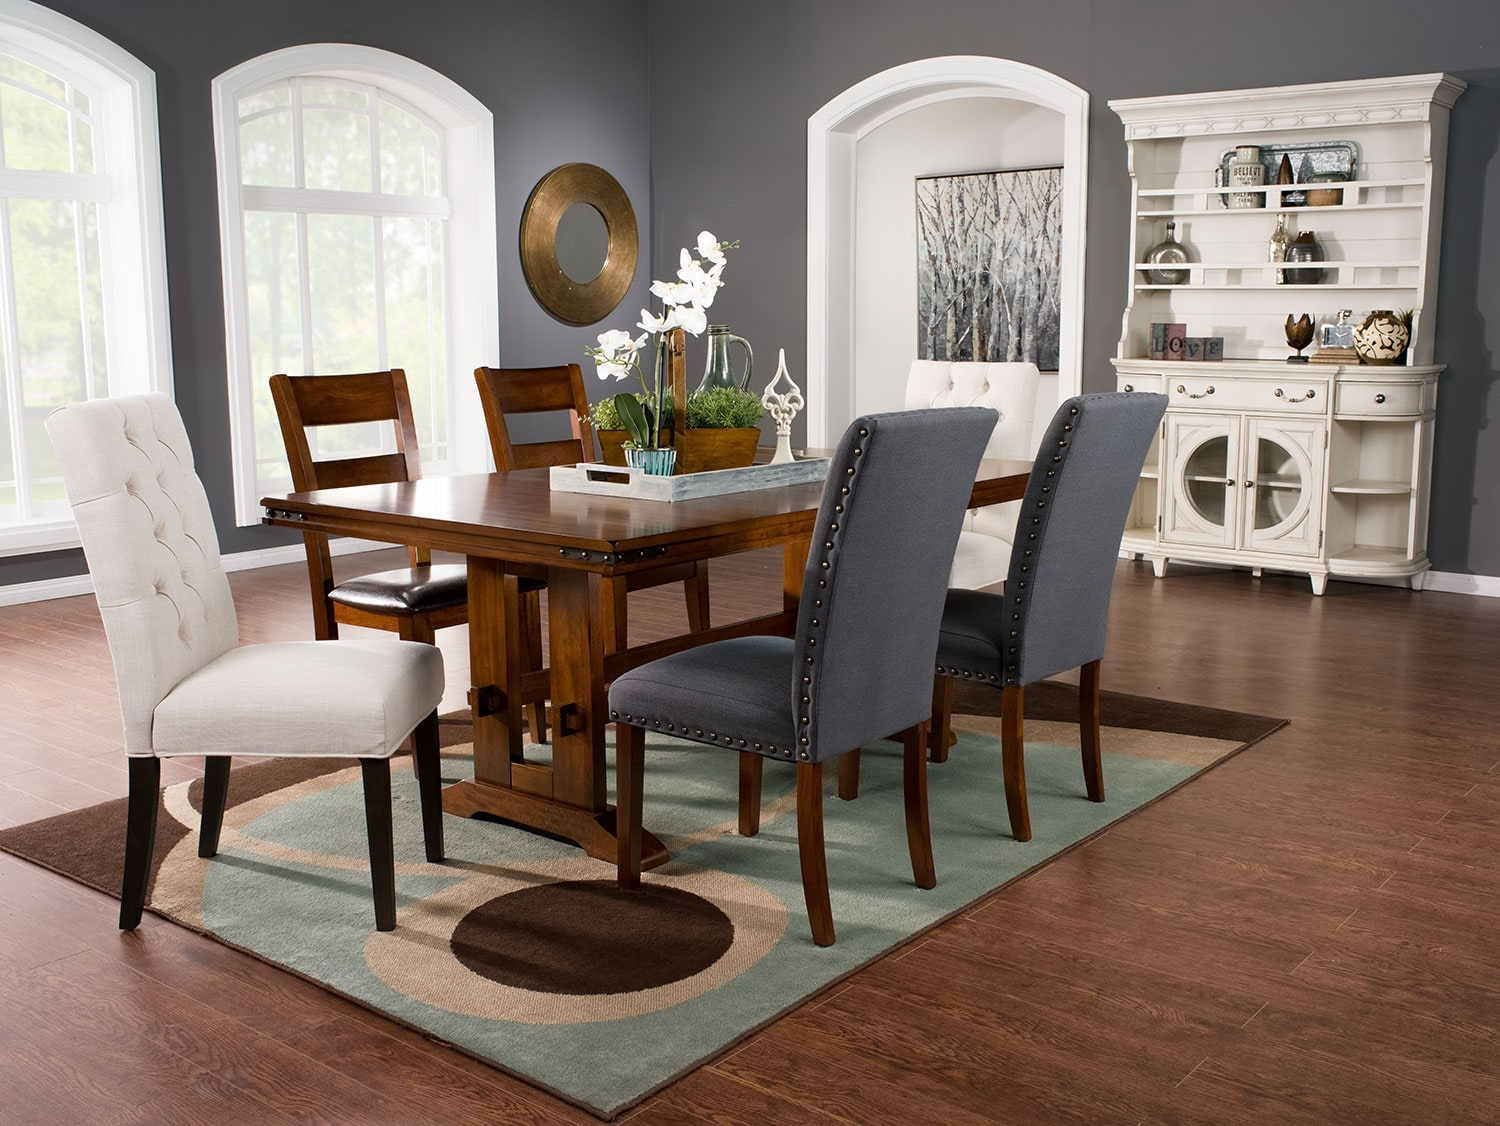 Magnus 7-Piece Dining Package with Assorted Dining Chairs